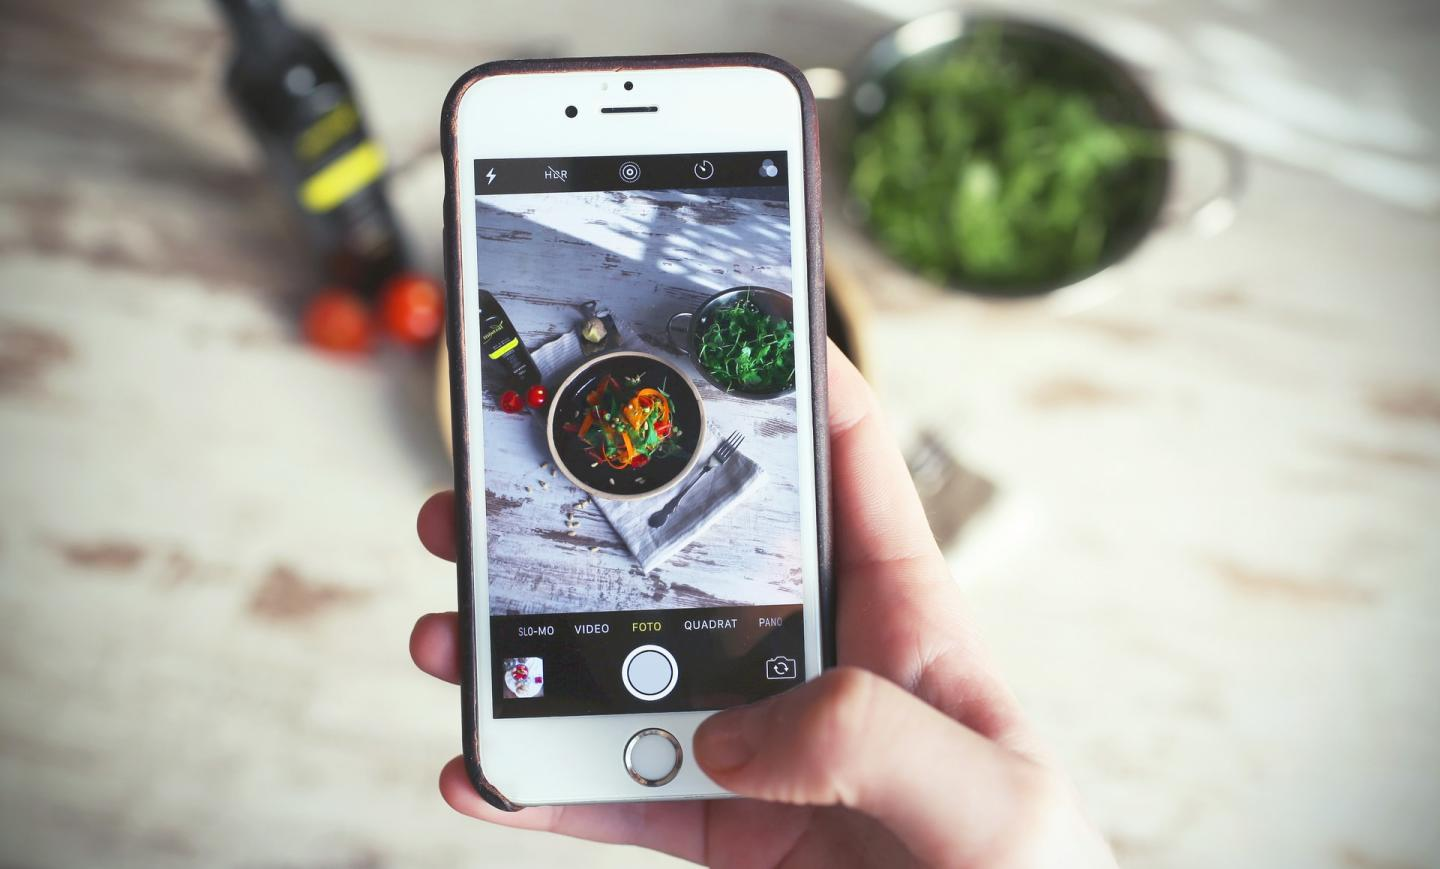 Top-down view of a person taking a picture of a salad